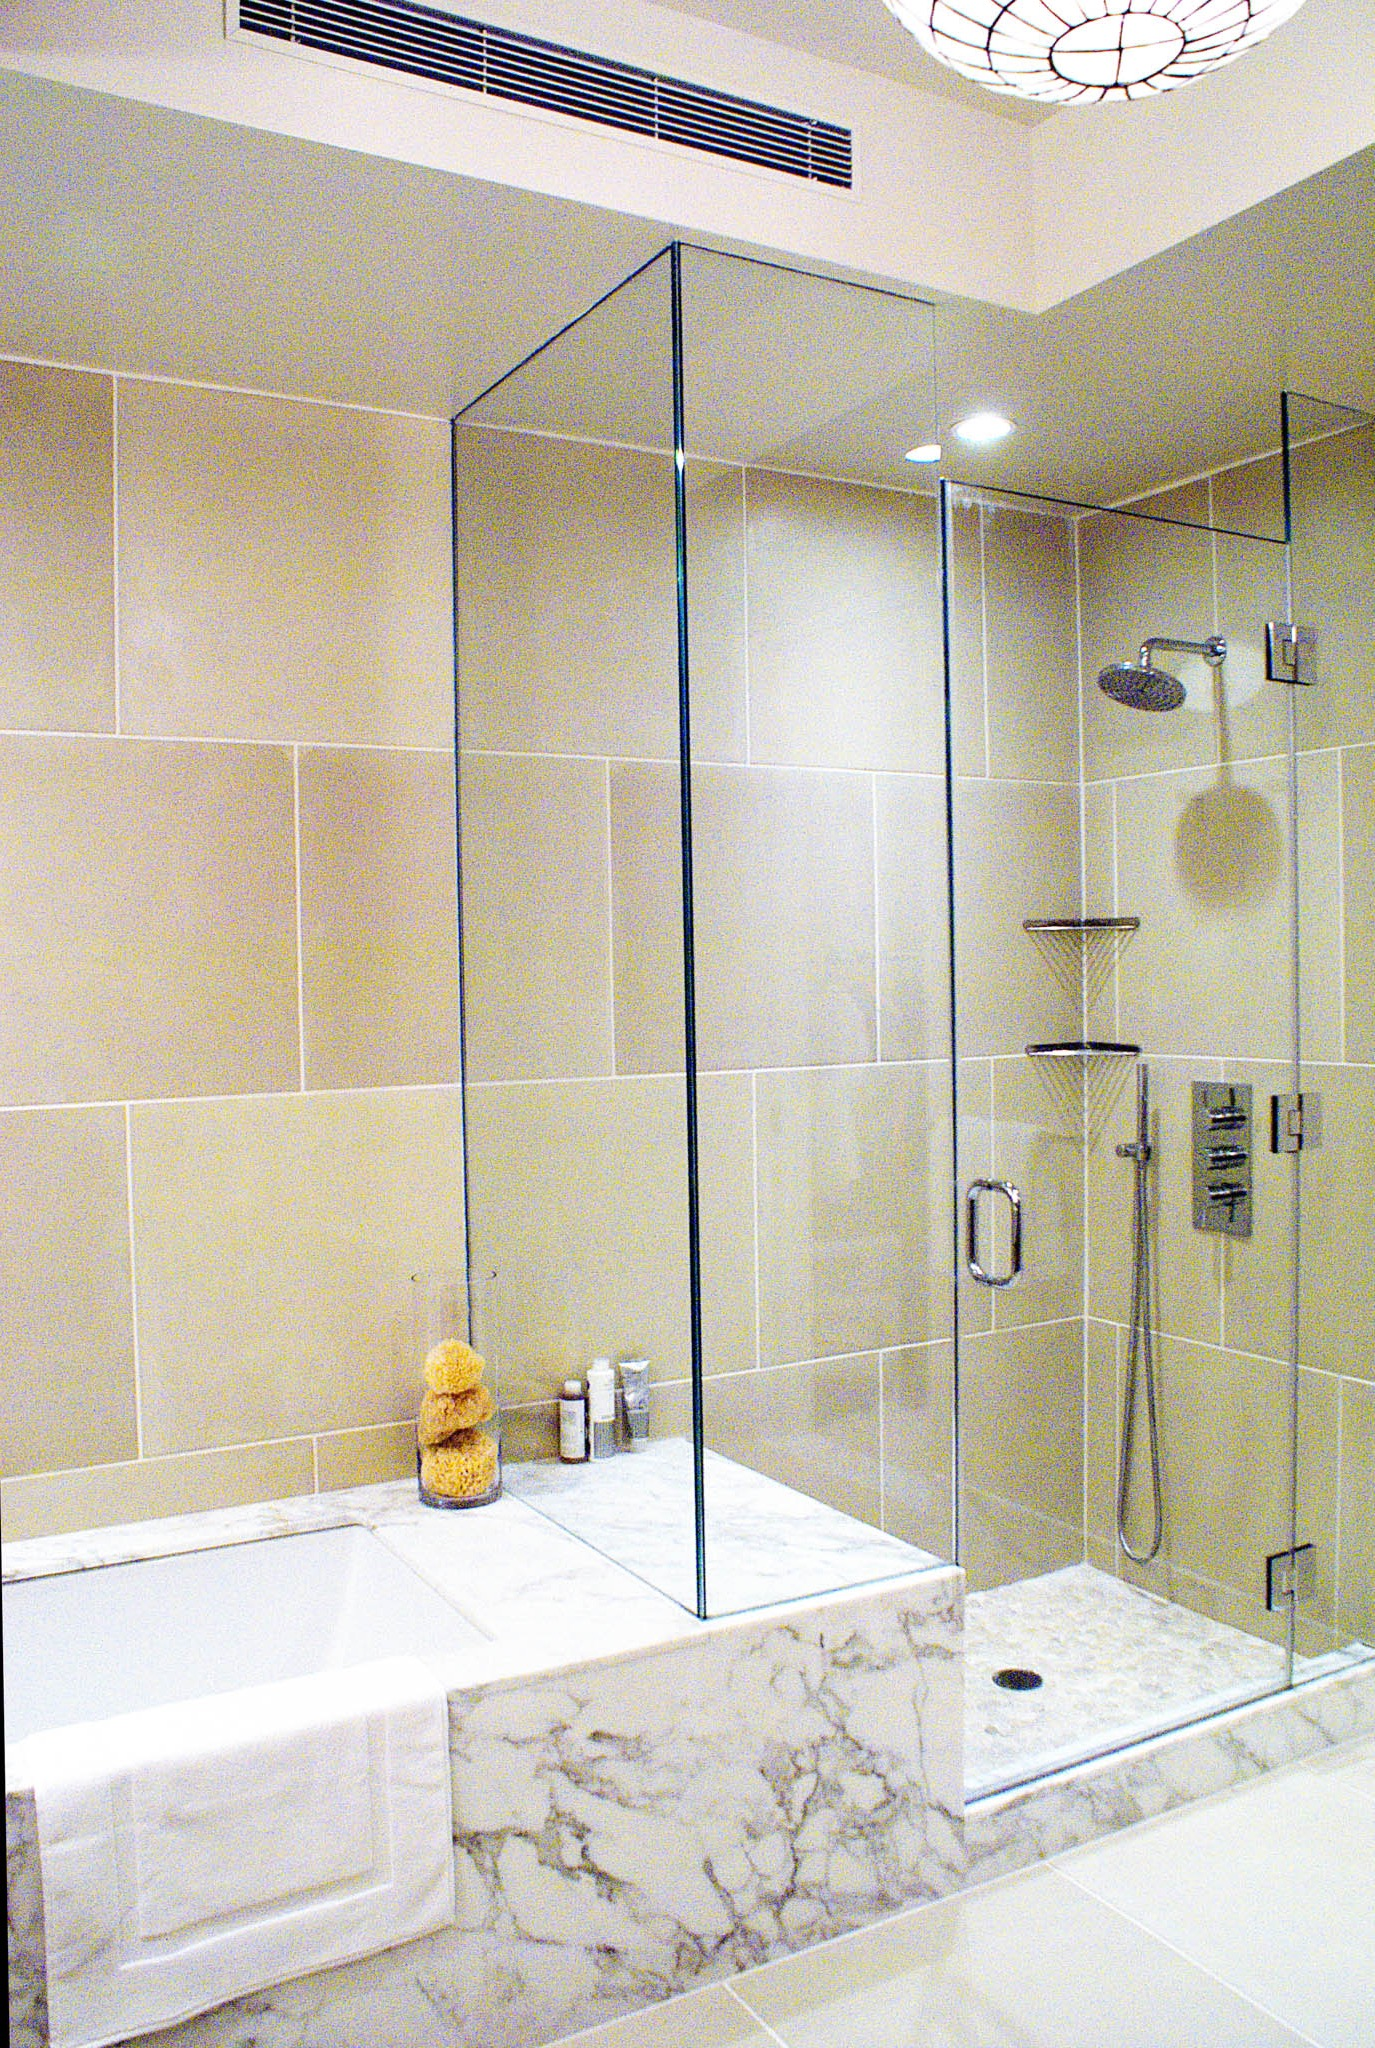 Limestone Tile Bathroom With Pebble Floor Shower And Bathtub Combination (Image 10 of 19)